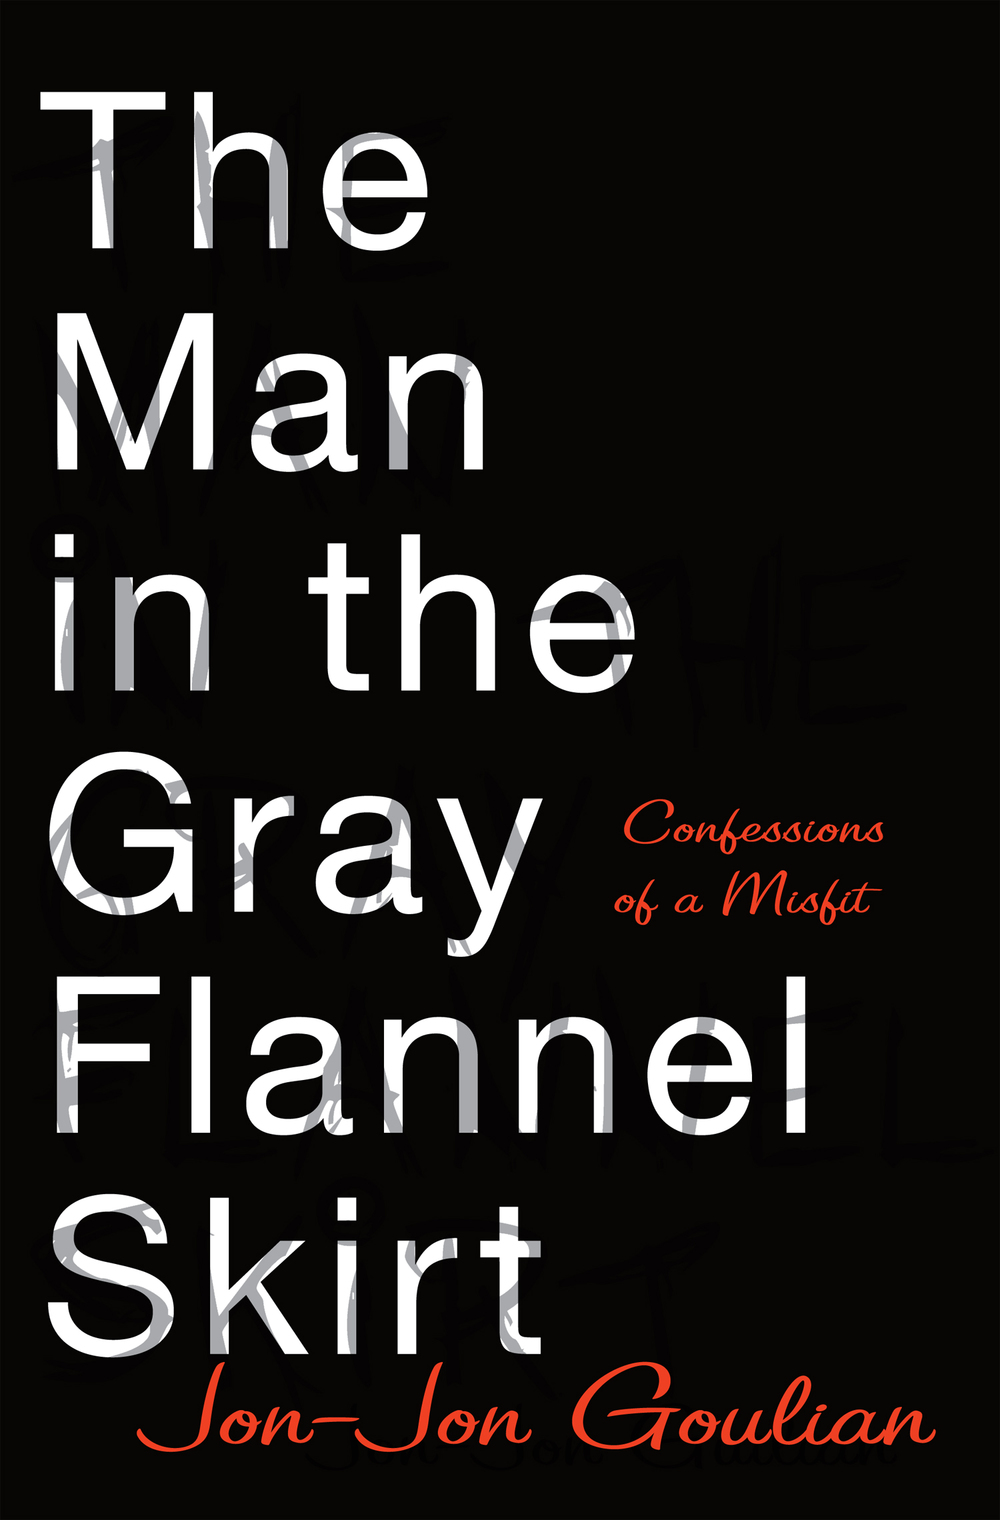 THE-MAN-IN-GRAY-FLANNEL-SKIRT-comp5-ss6.jpg